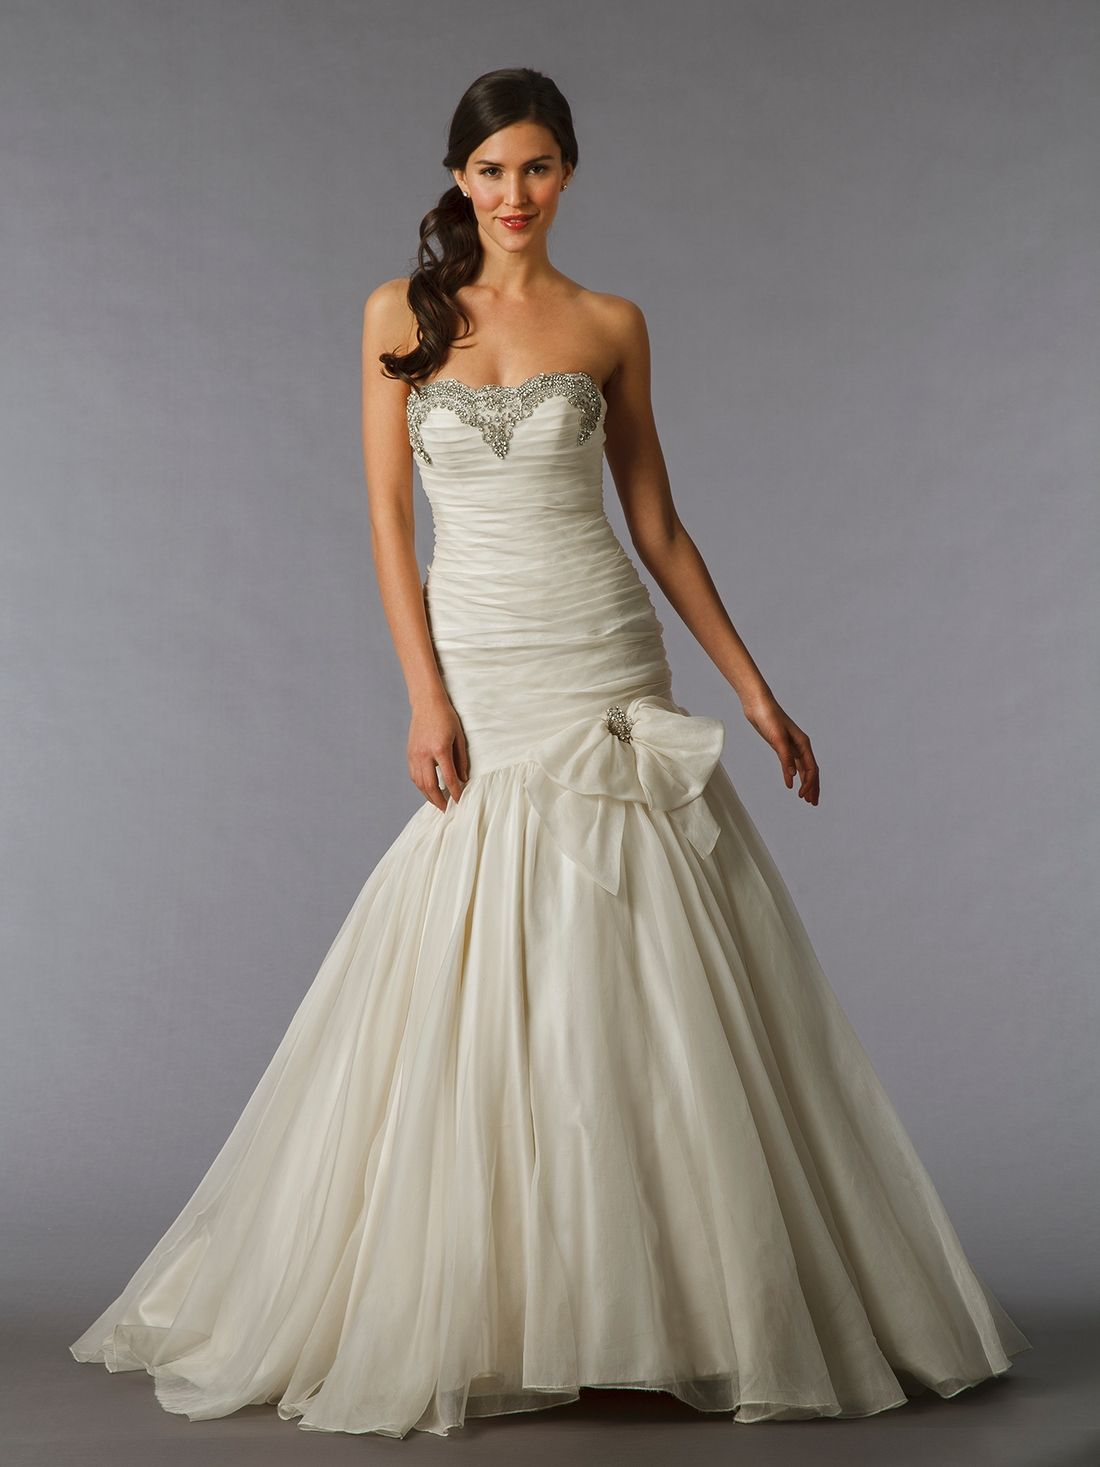 10 Best images about Pnina Tornai Bridal on Pinterest  Yes to the ...